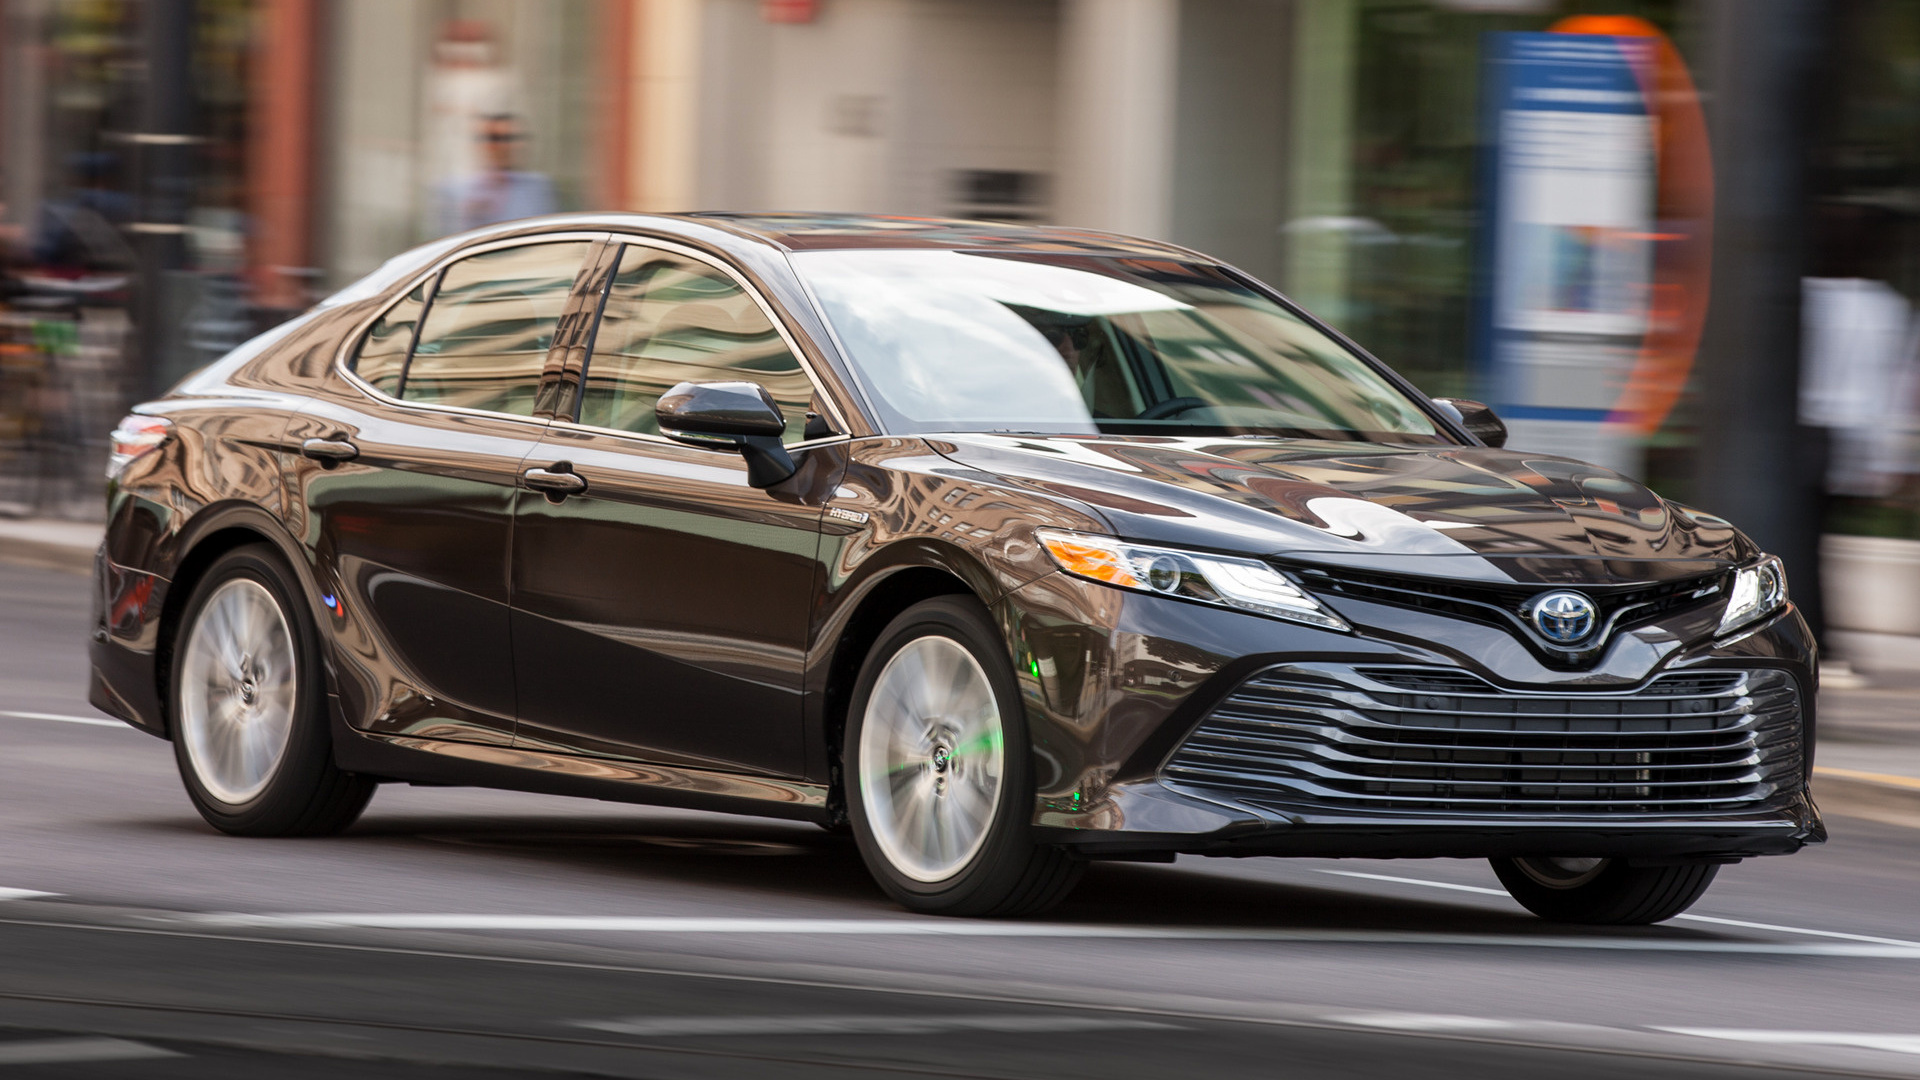 toyota camry hybrid xle 2018 wallpapers and hd images. Black Bedroom Furniture Sets. Home Design Ideas